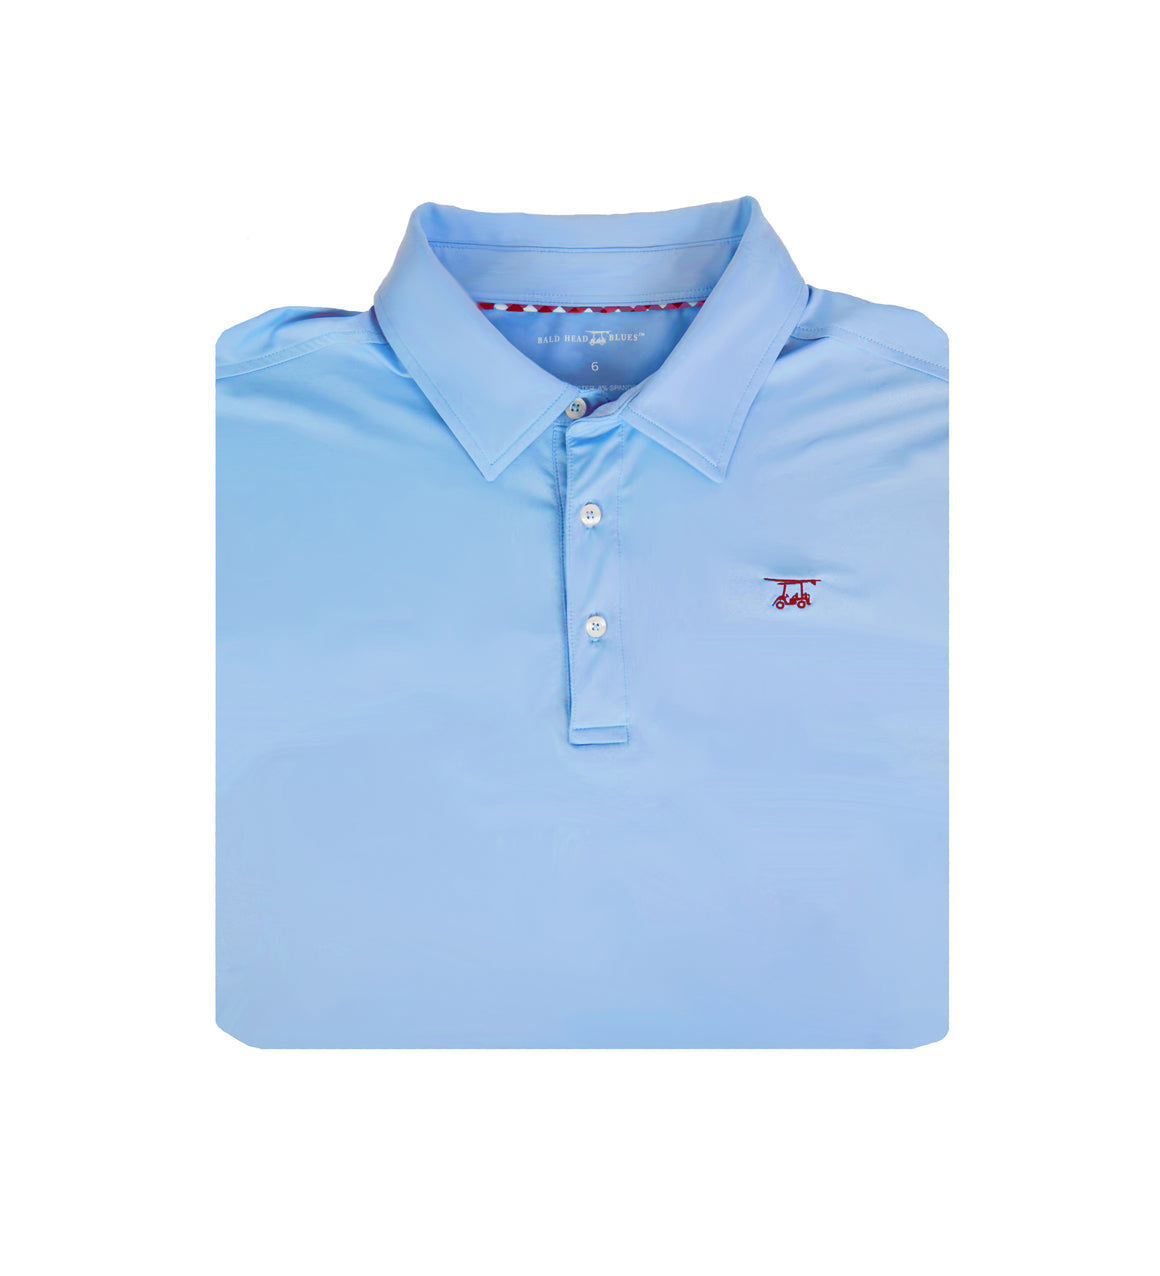 NEW Albatross Youth Polo - Solid Bell